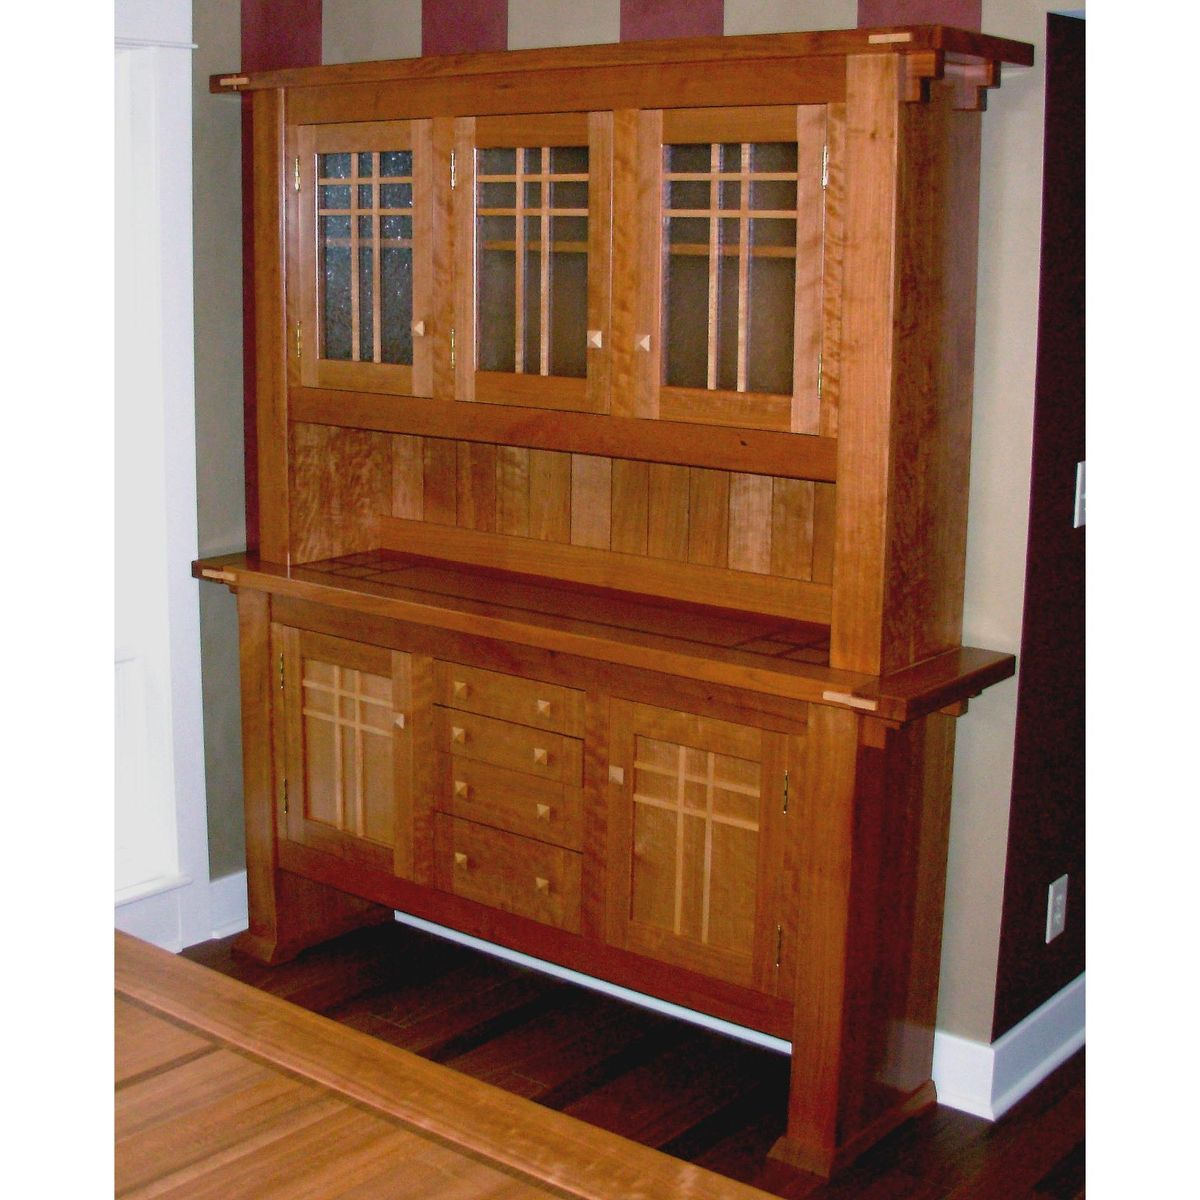 Hand made dining room hutch by mevans design for A dining room hutch